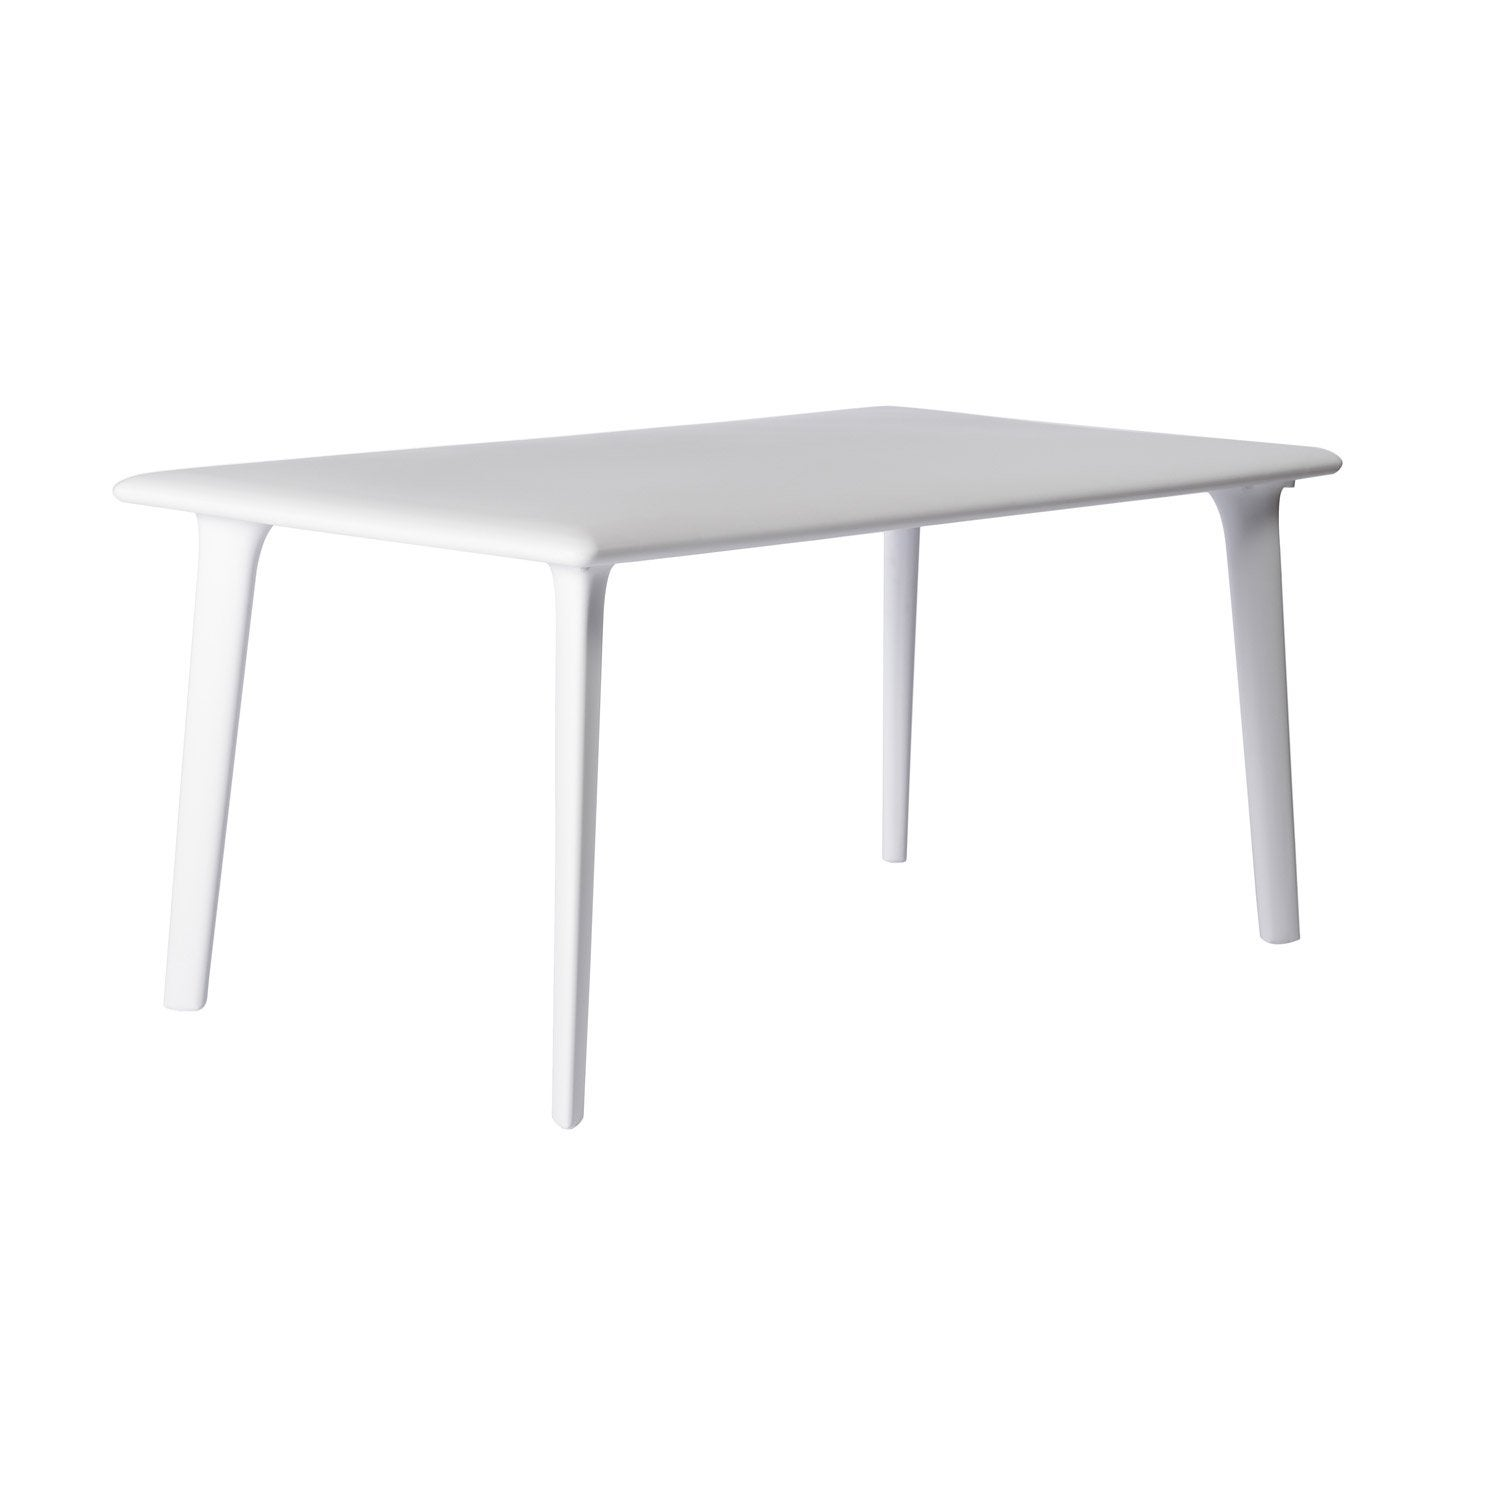 table de jardin dessa rectangulaire blanc 6 personnes. Black Bedroom Furniture Sets. Home Design Ideas